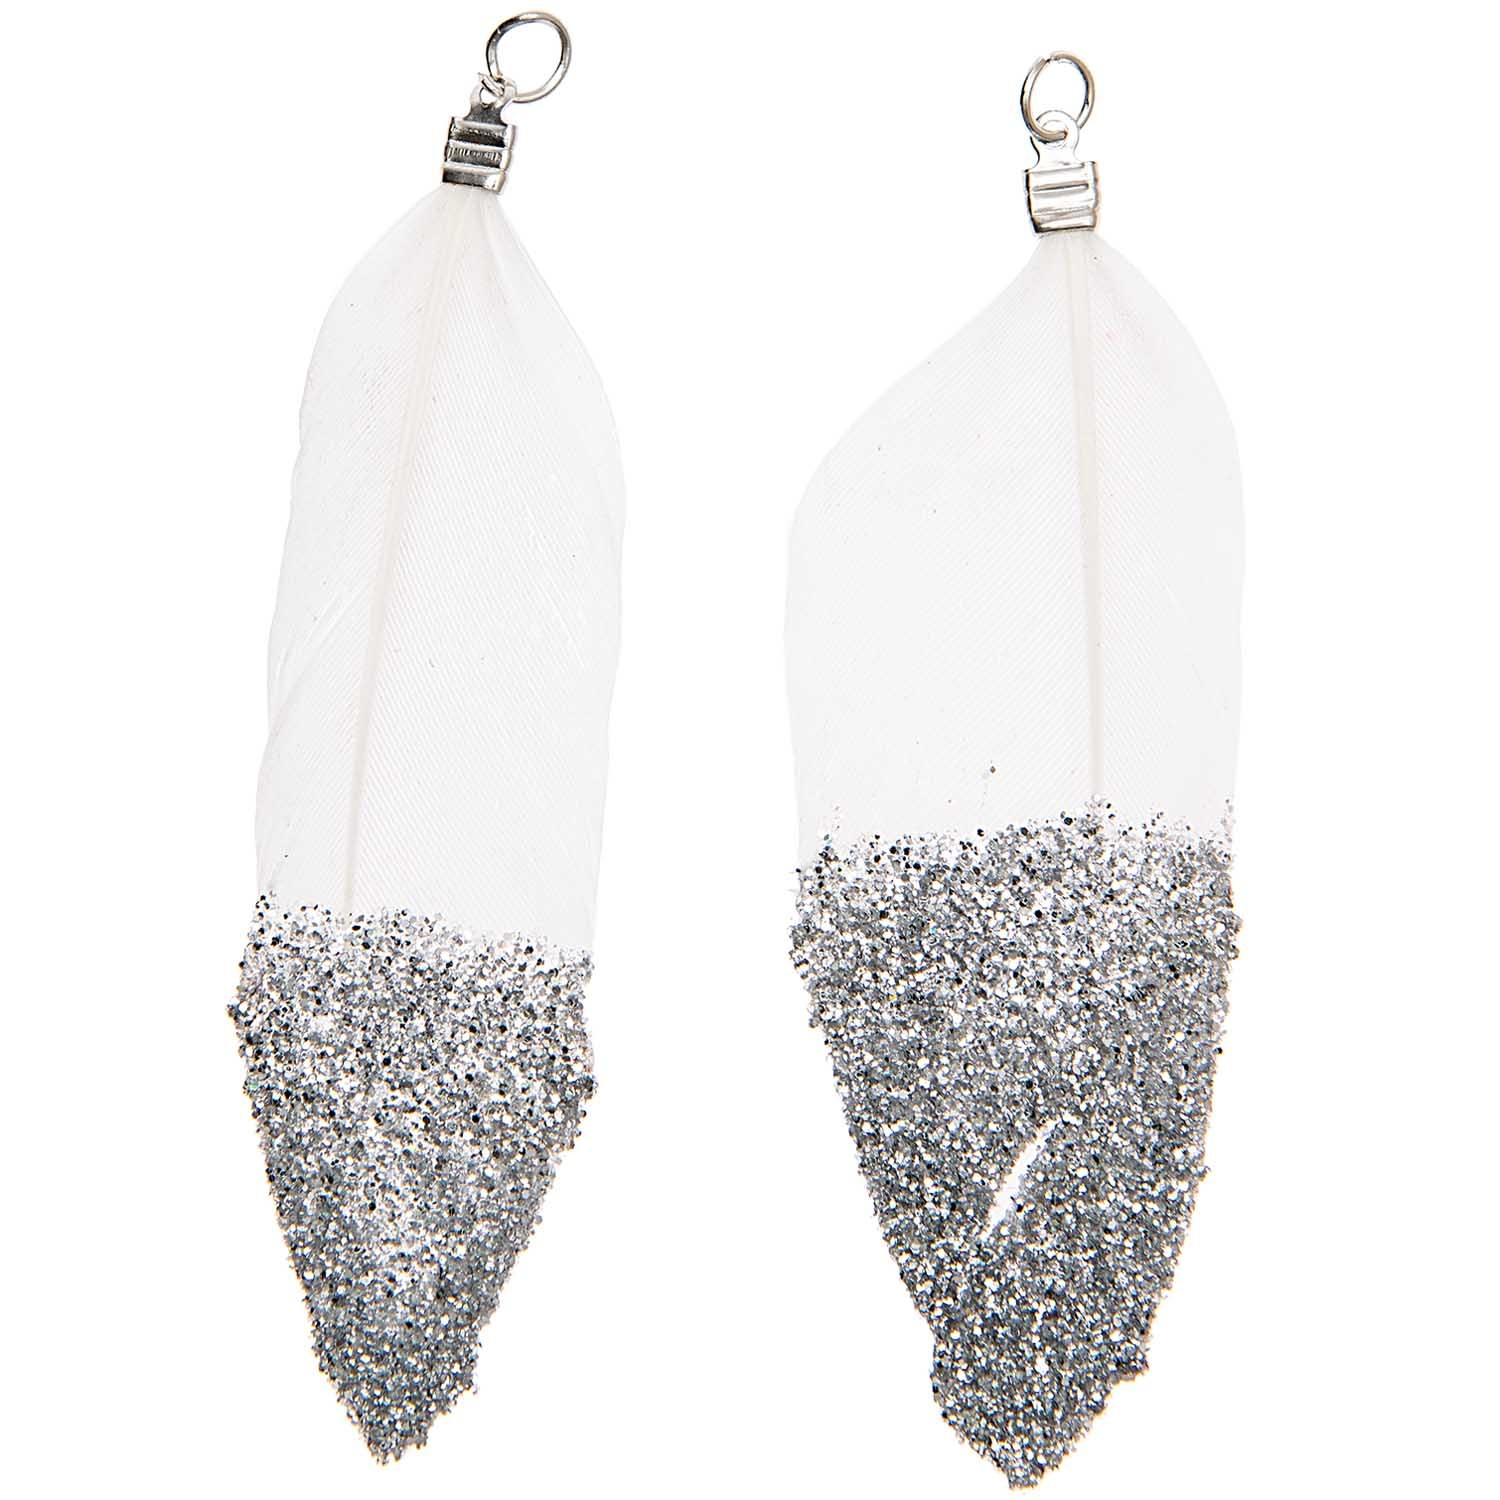 Rico NAY FEATHERS, GLITTER,WHITE/SILVER 2 PCS, WITH SILVER EYELET